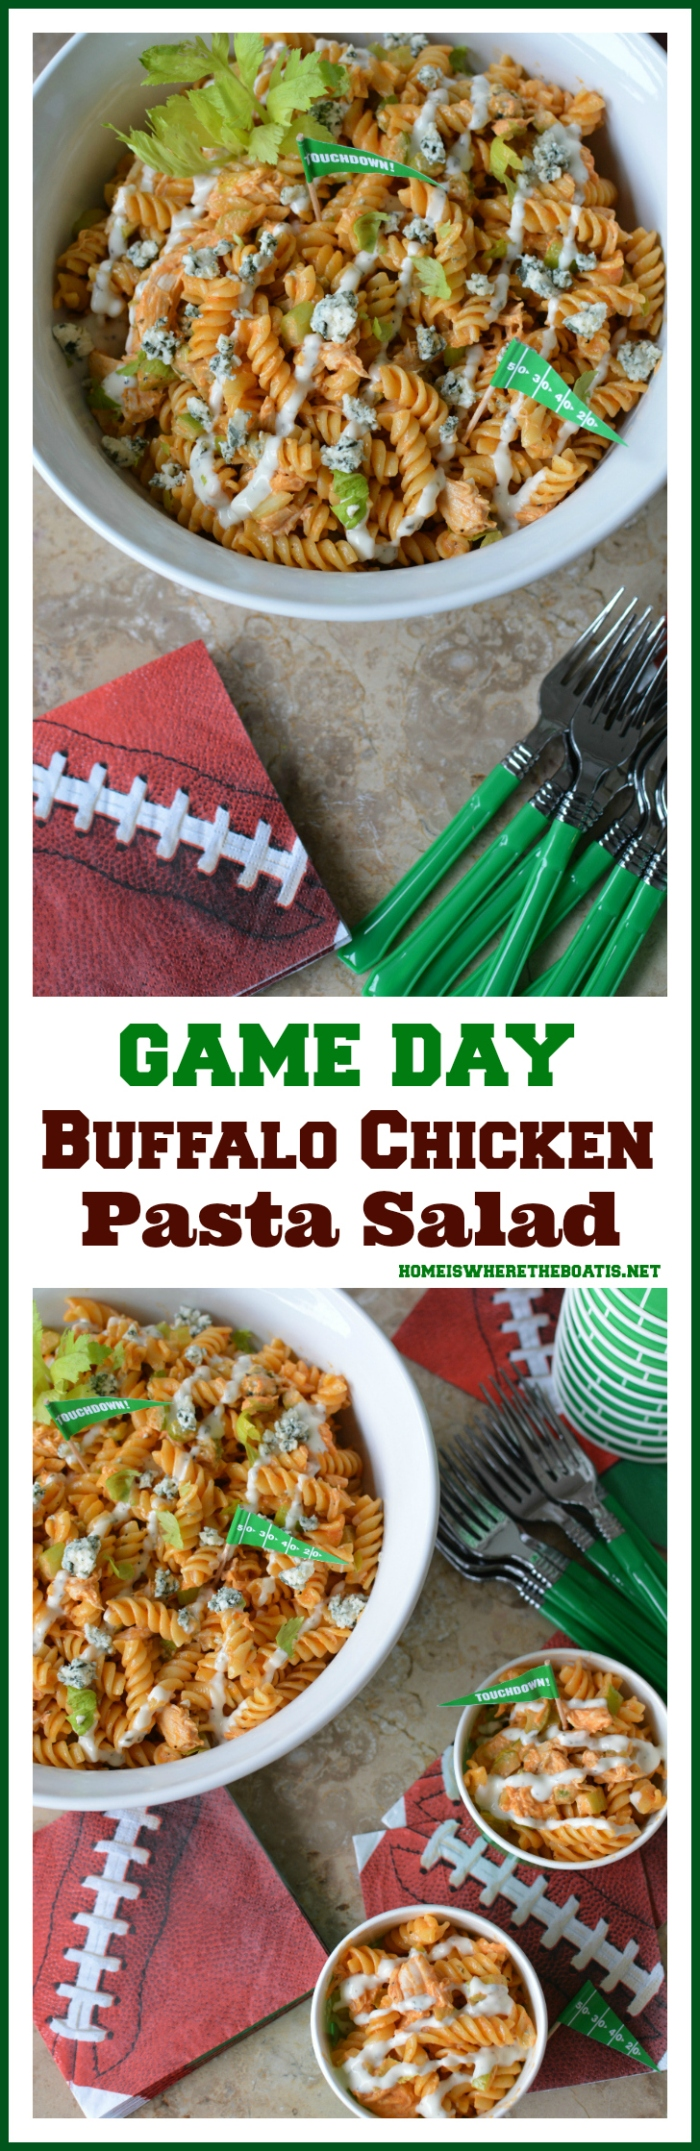 Buffalo Chex Mix And Game Day Recipes Home Is Where The